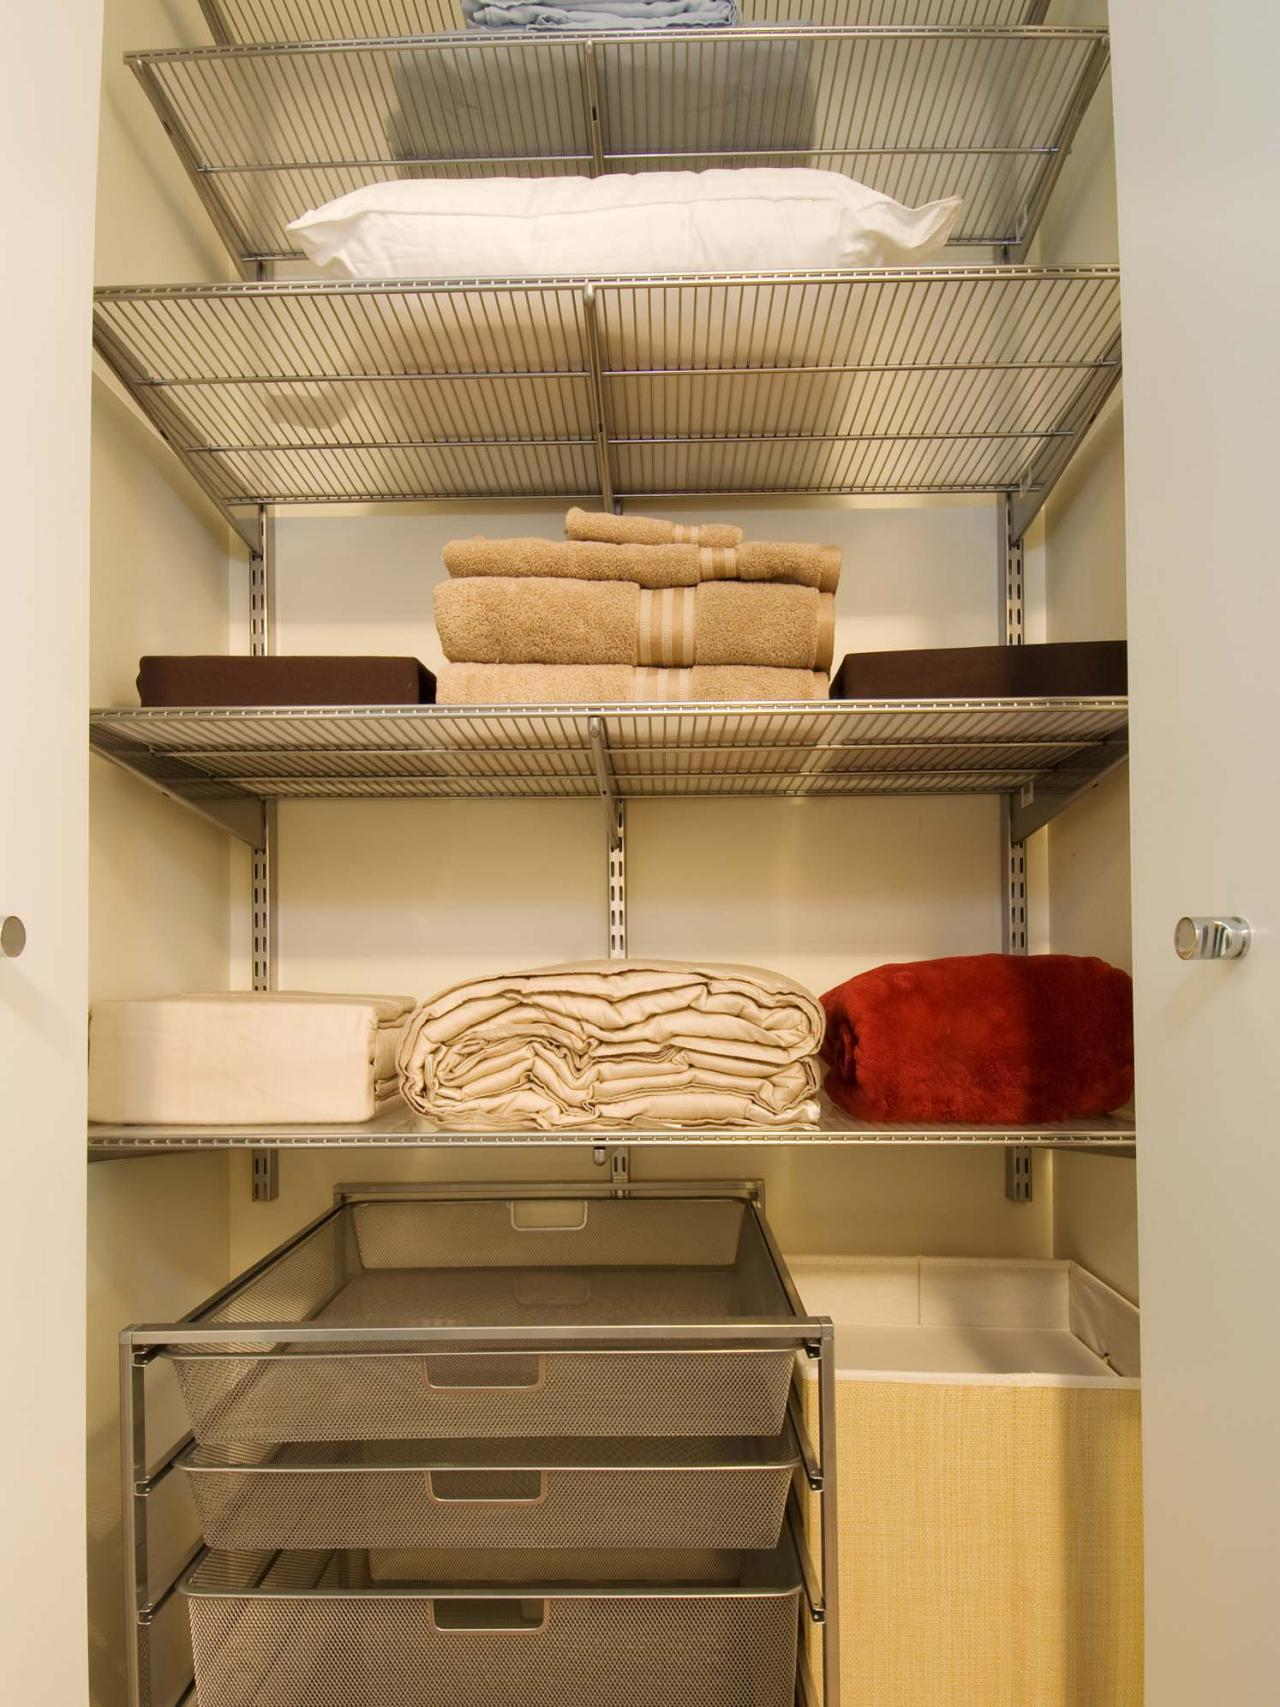 organization closet get organizing a in s to realistic moms linen here plan organizer your order want